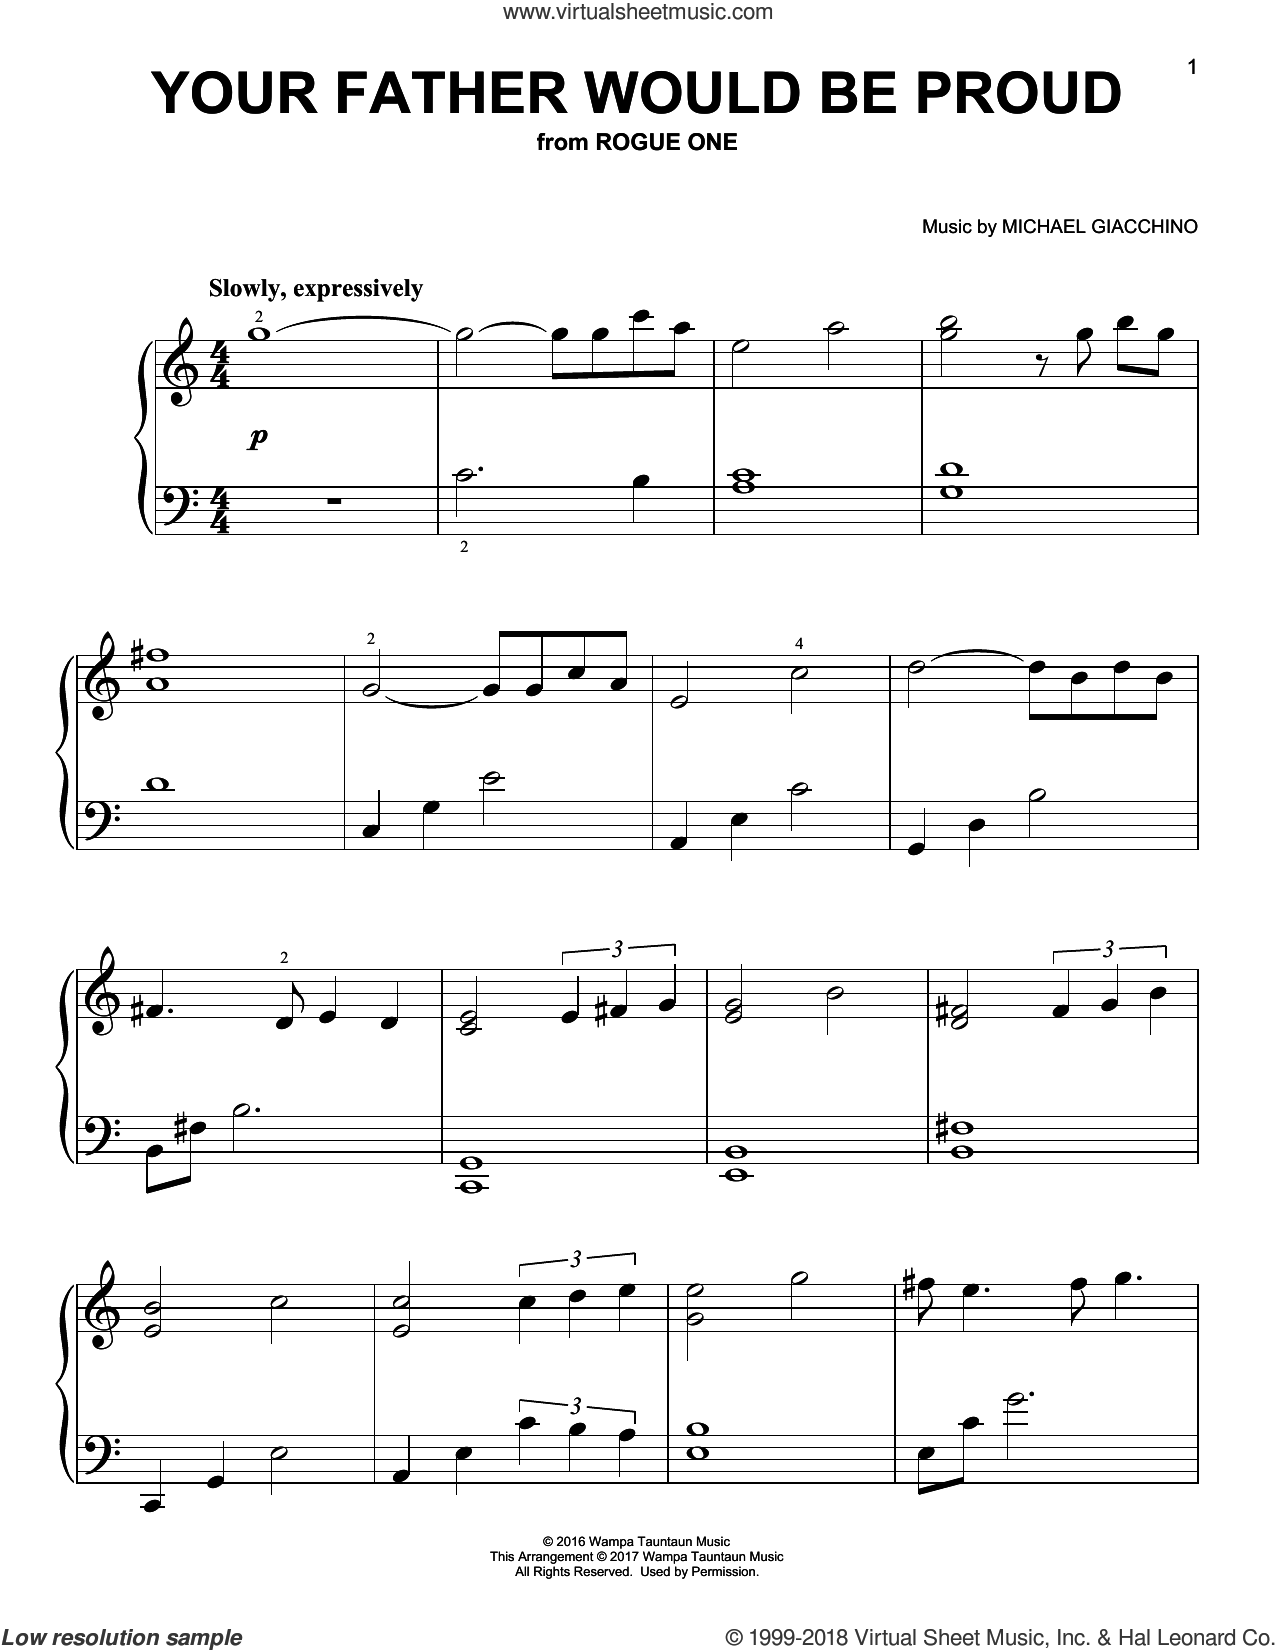 Your Father Would Be Proud, (easy) sheet music for piano solo by Michael Giacchino, classical score, easy skill level